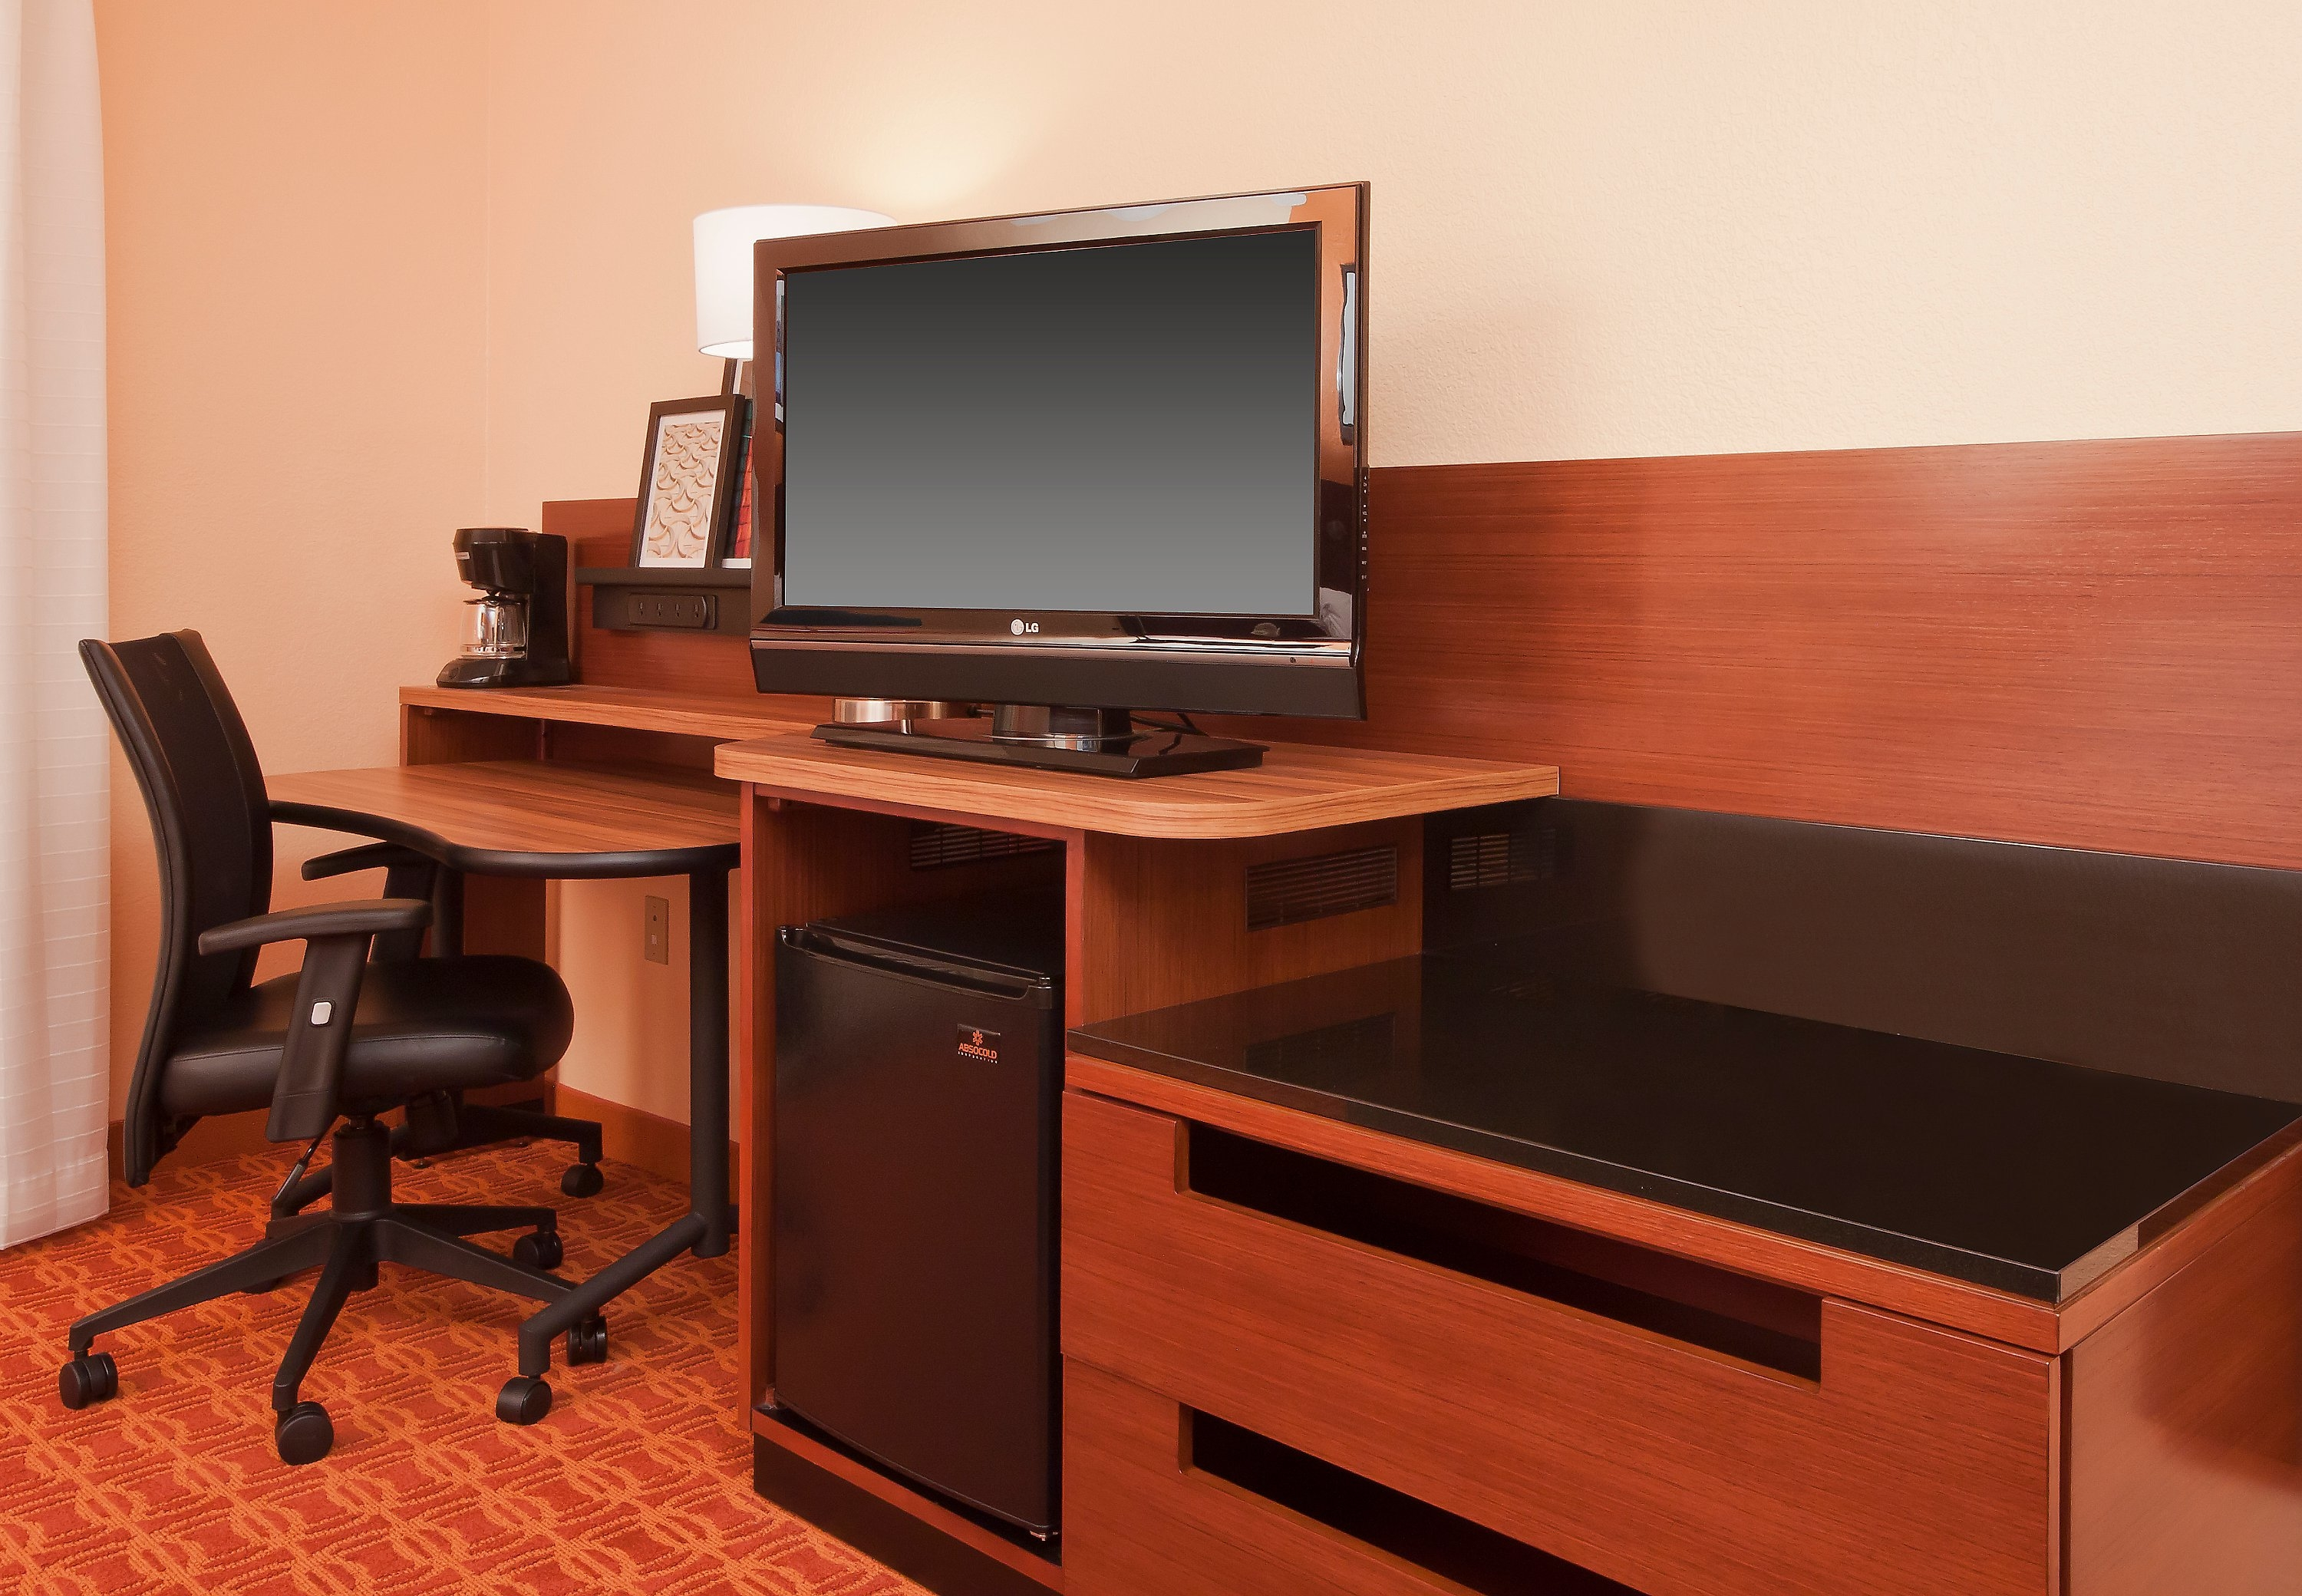 Fairfield Inn & Suites by Marriott Fort Worth/Fossil Creek image 13